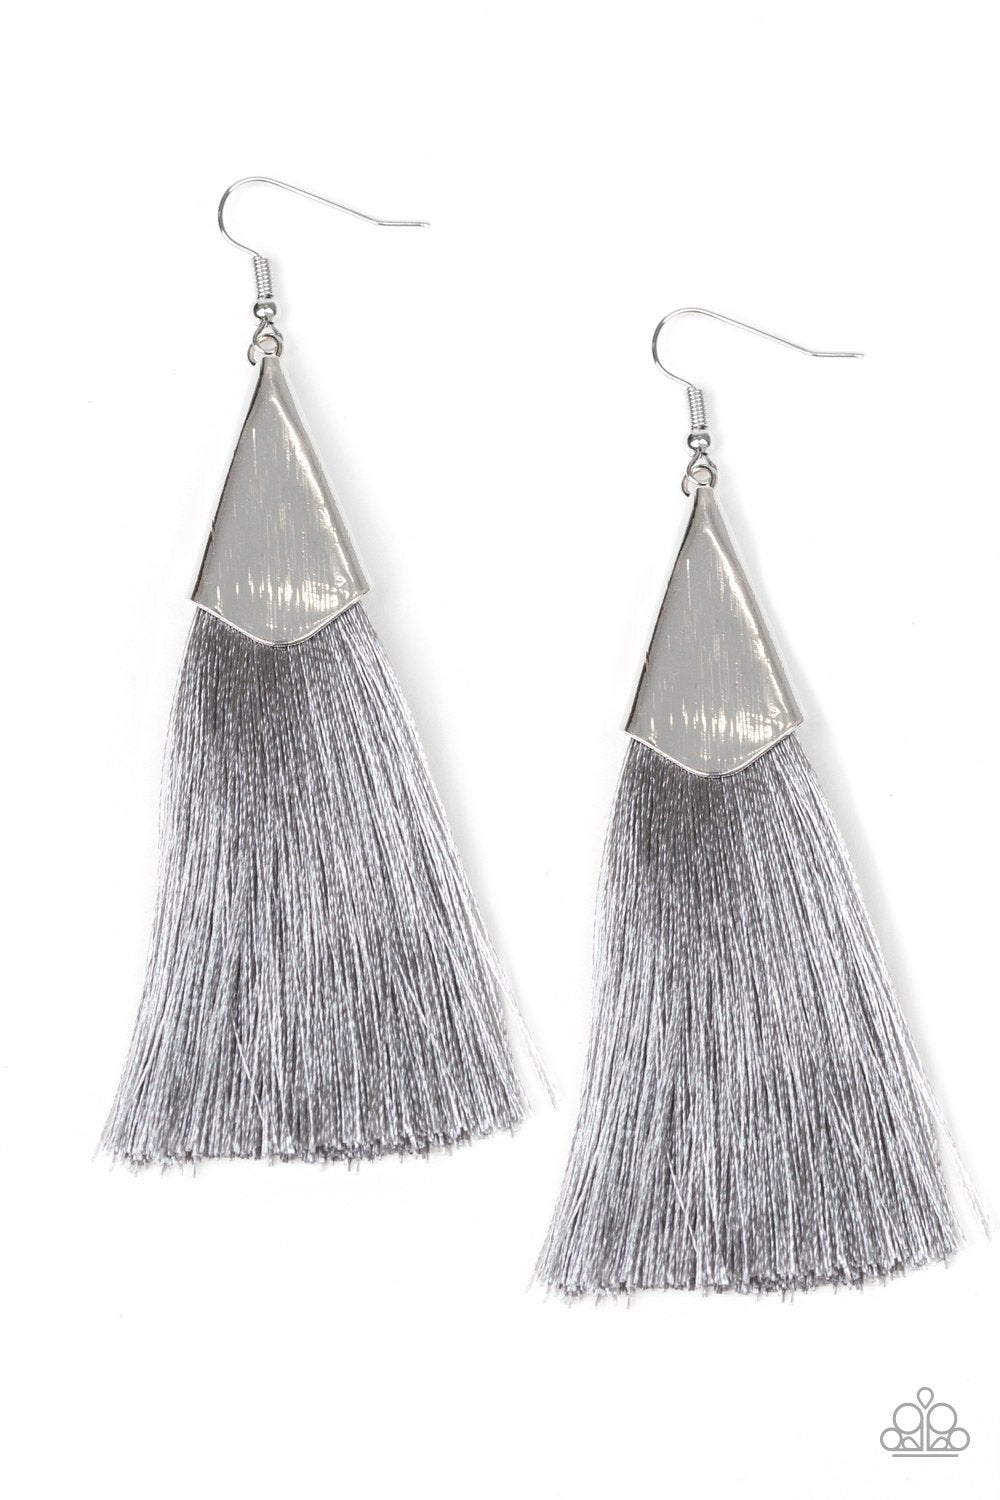 In Full PLUME - Silver - Paparazzi Accessories - Pretty Girl Jewels